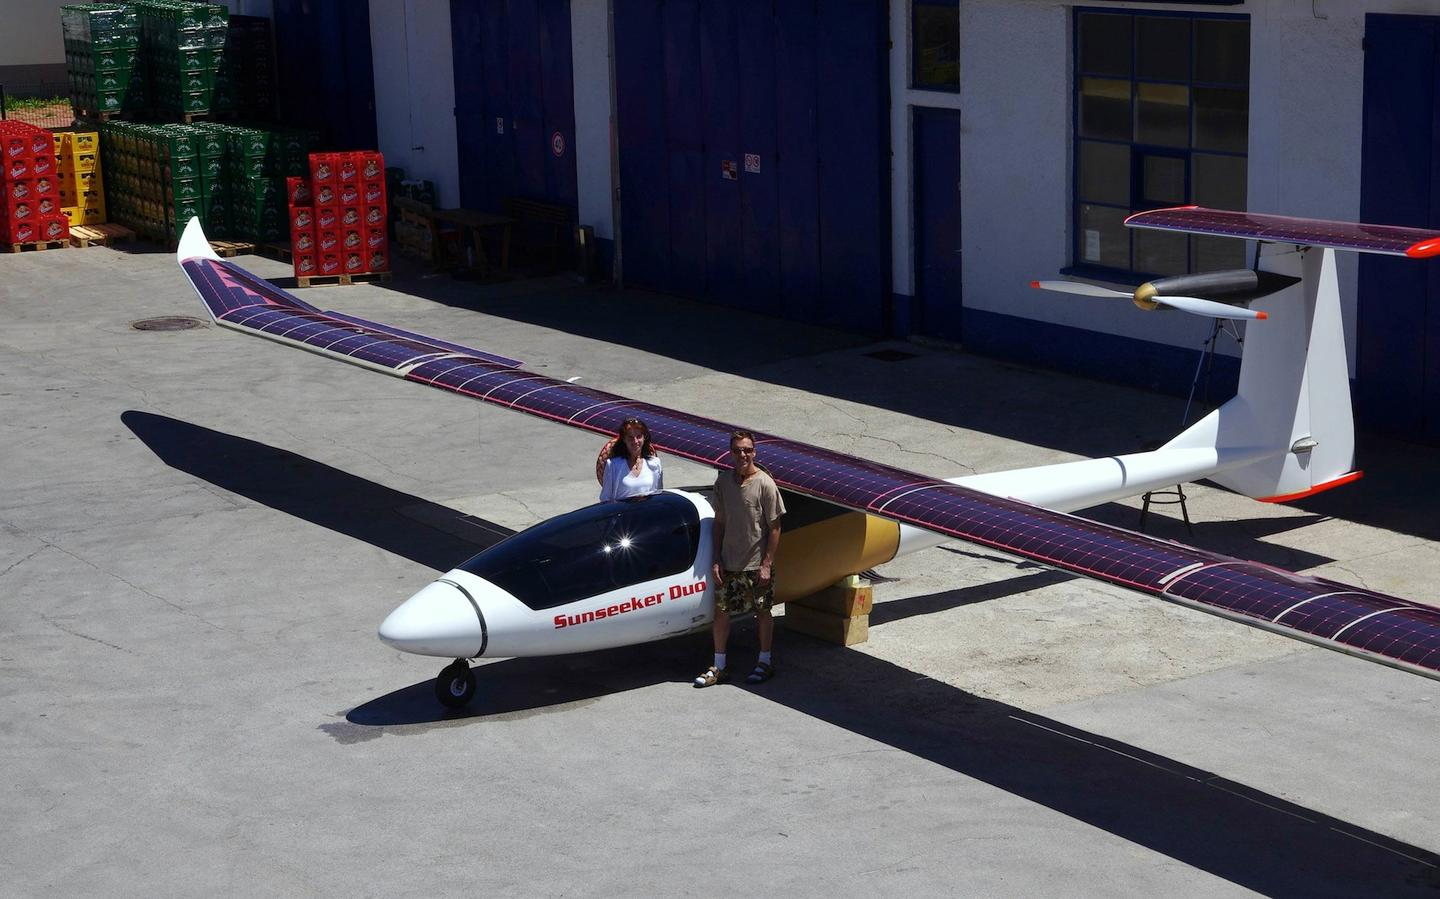 The Sunseeker Duo is billed as the world's first two-passenger solar aircraft